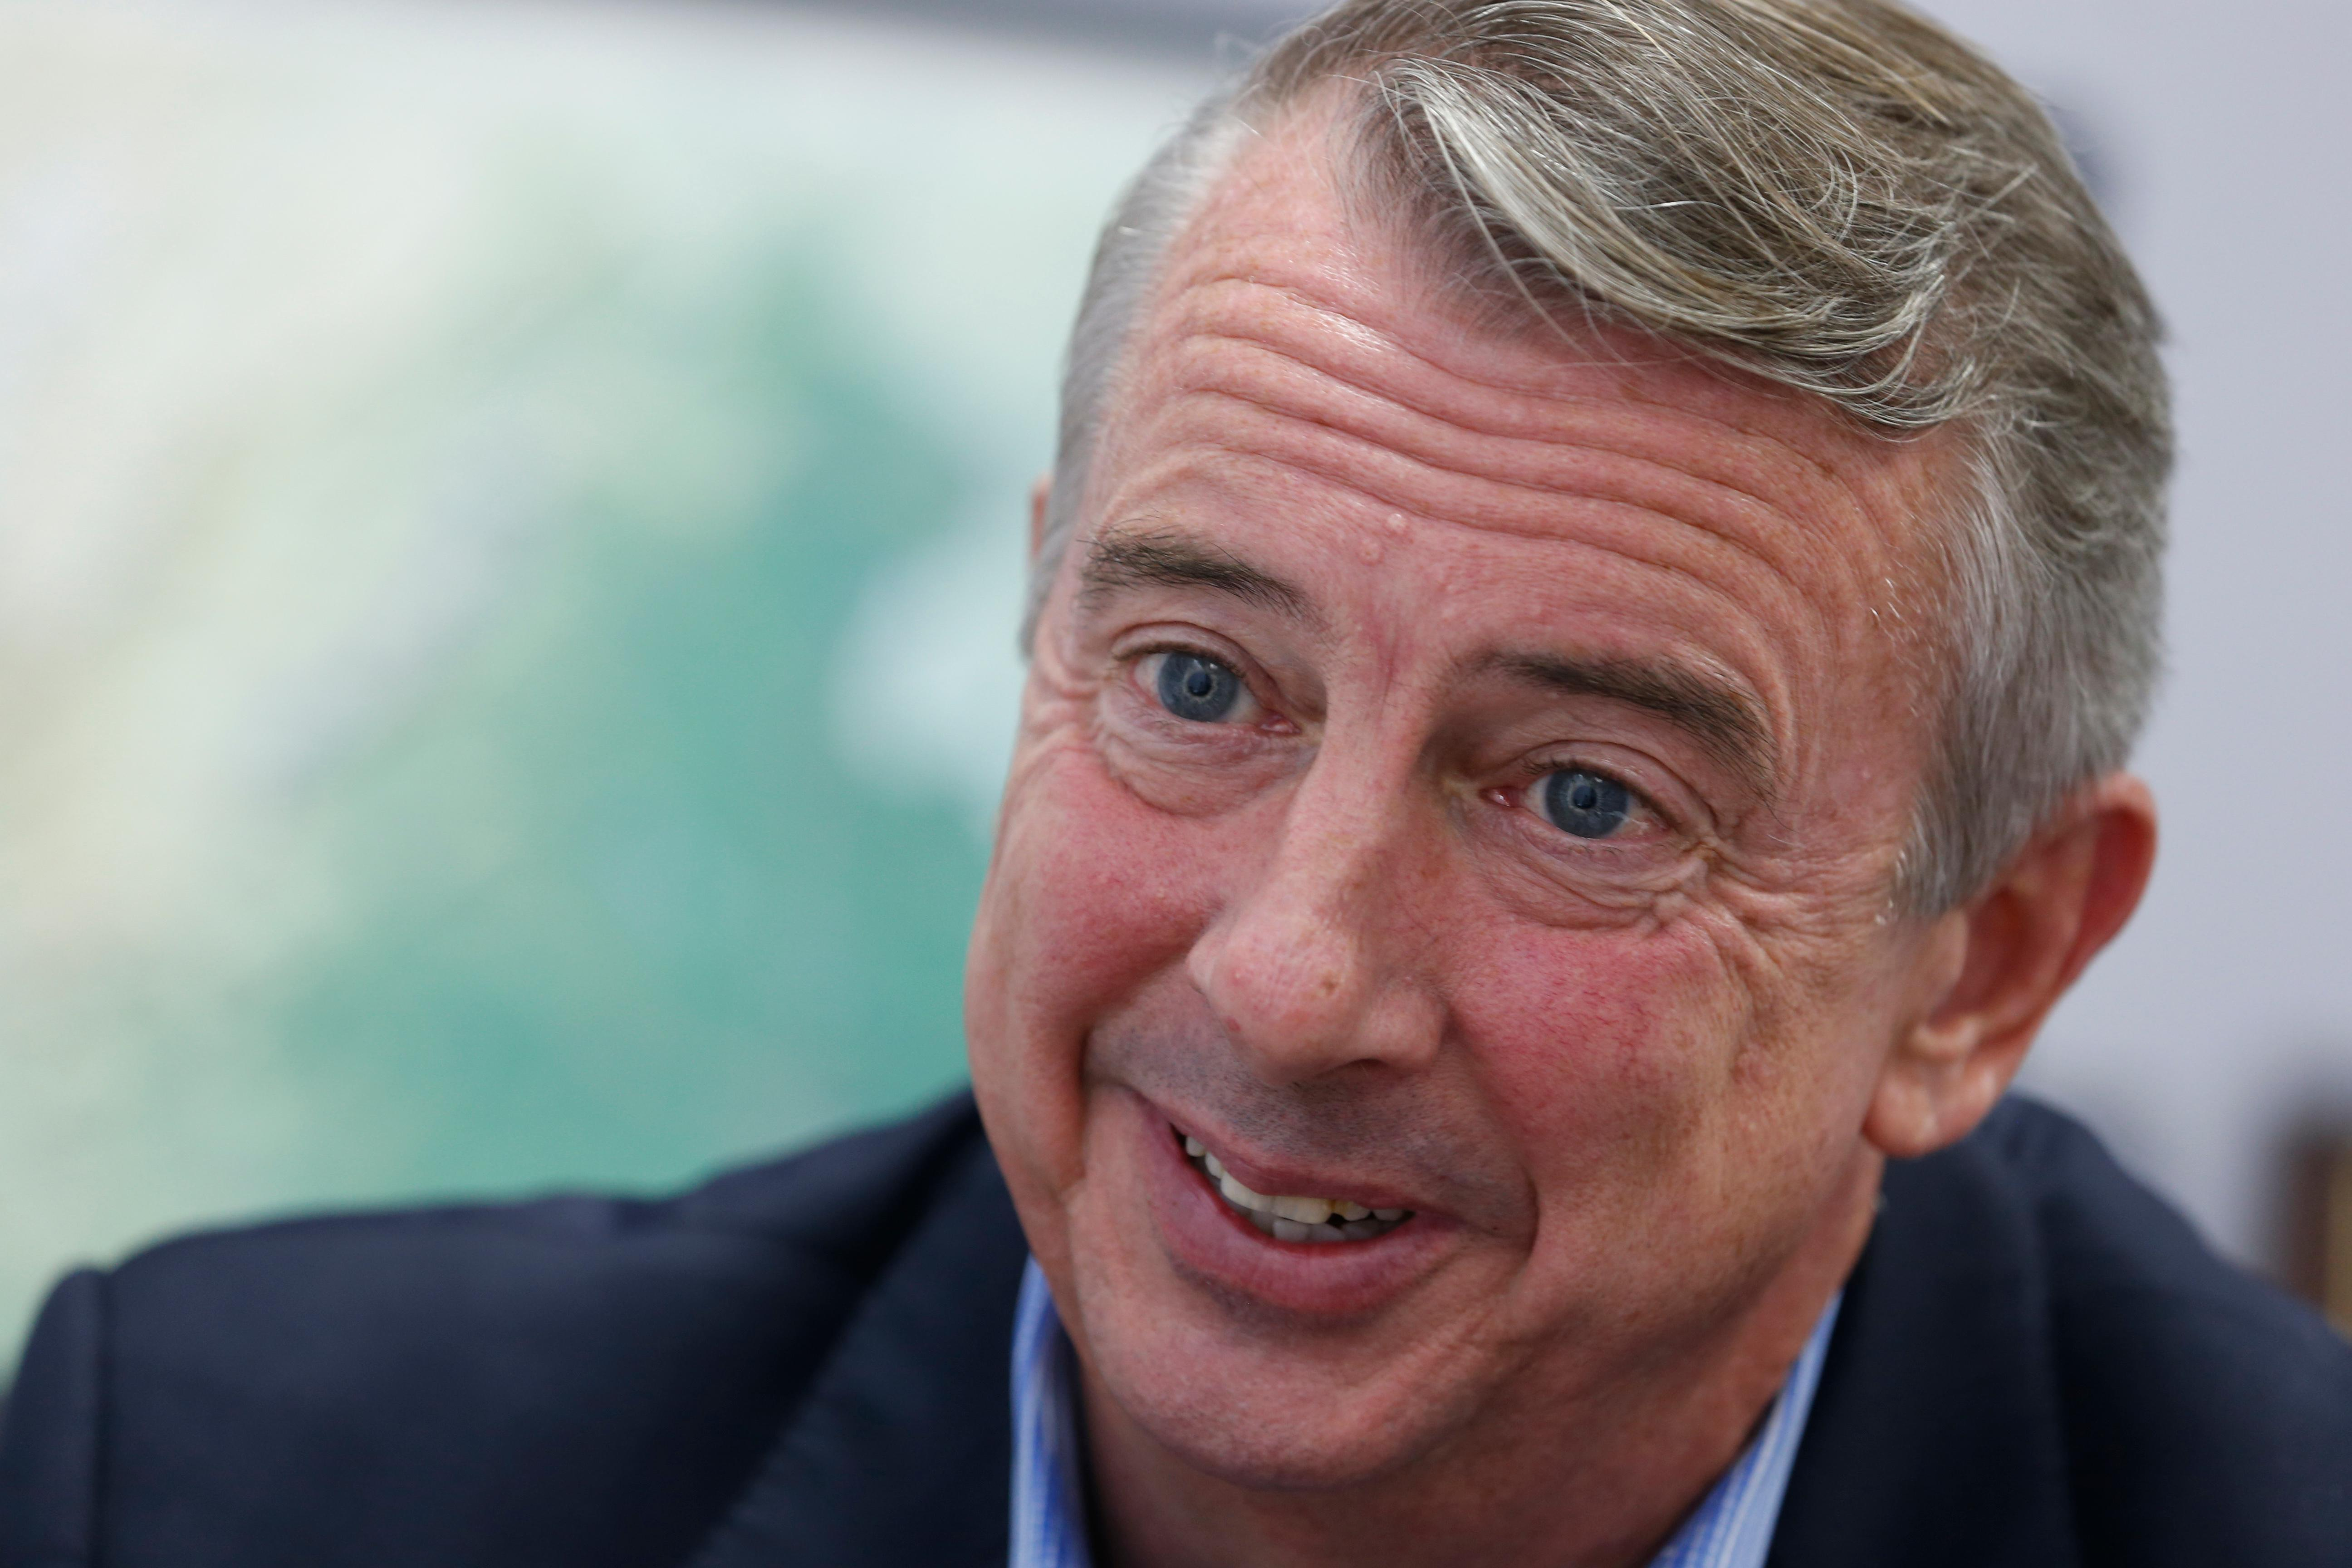 FILE - In this Sept. 26, 2017, file photo, Republican gubernatorial candidate Ed Gillespie, during an interview in Richmond, Va. (AP Photo/Steve Helber, File)<p></p>